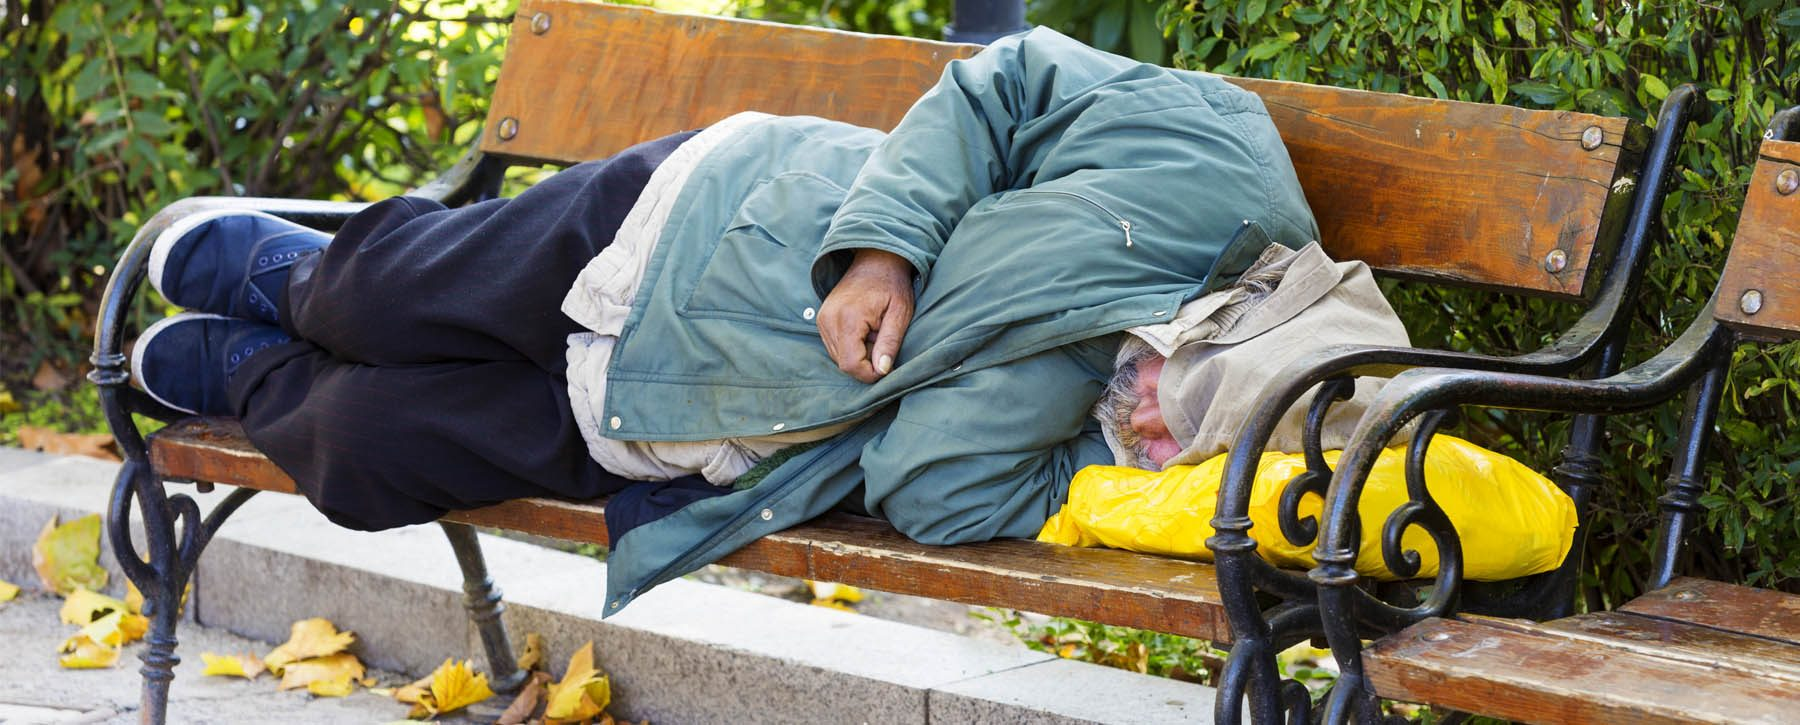 Portland Agencies Act To Protect Homeless During Covid 19